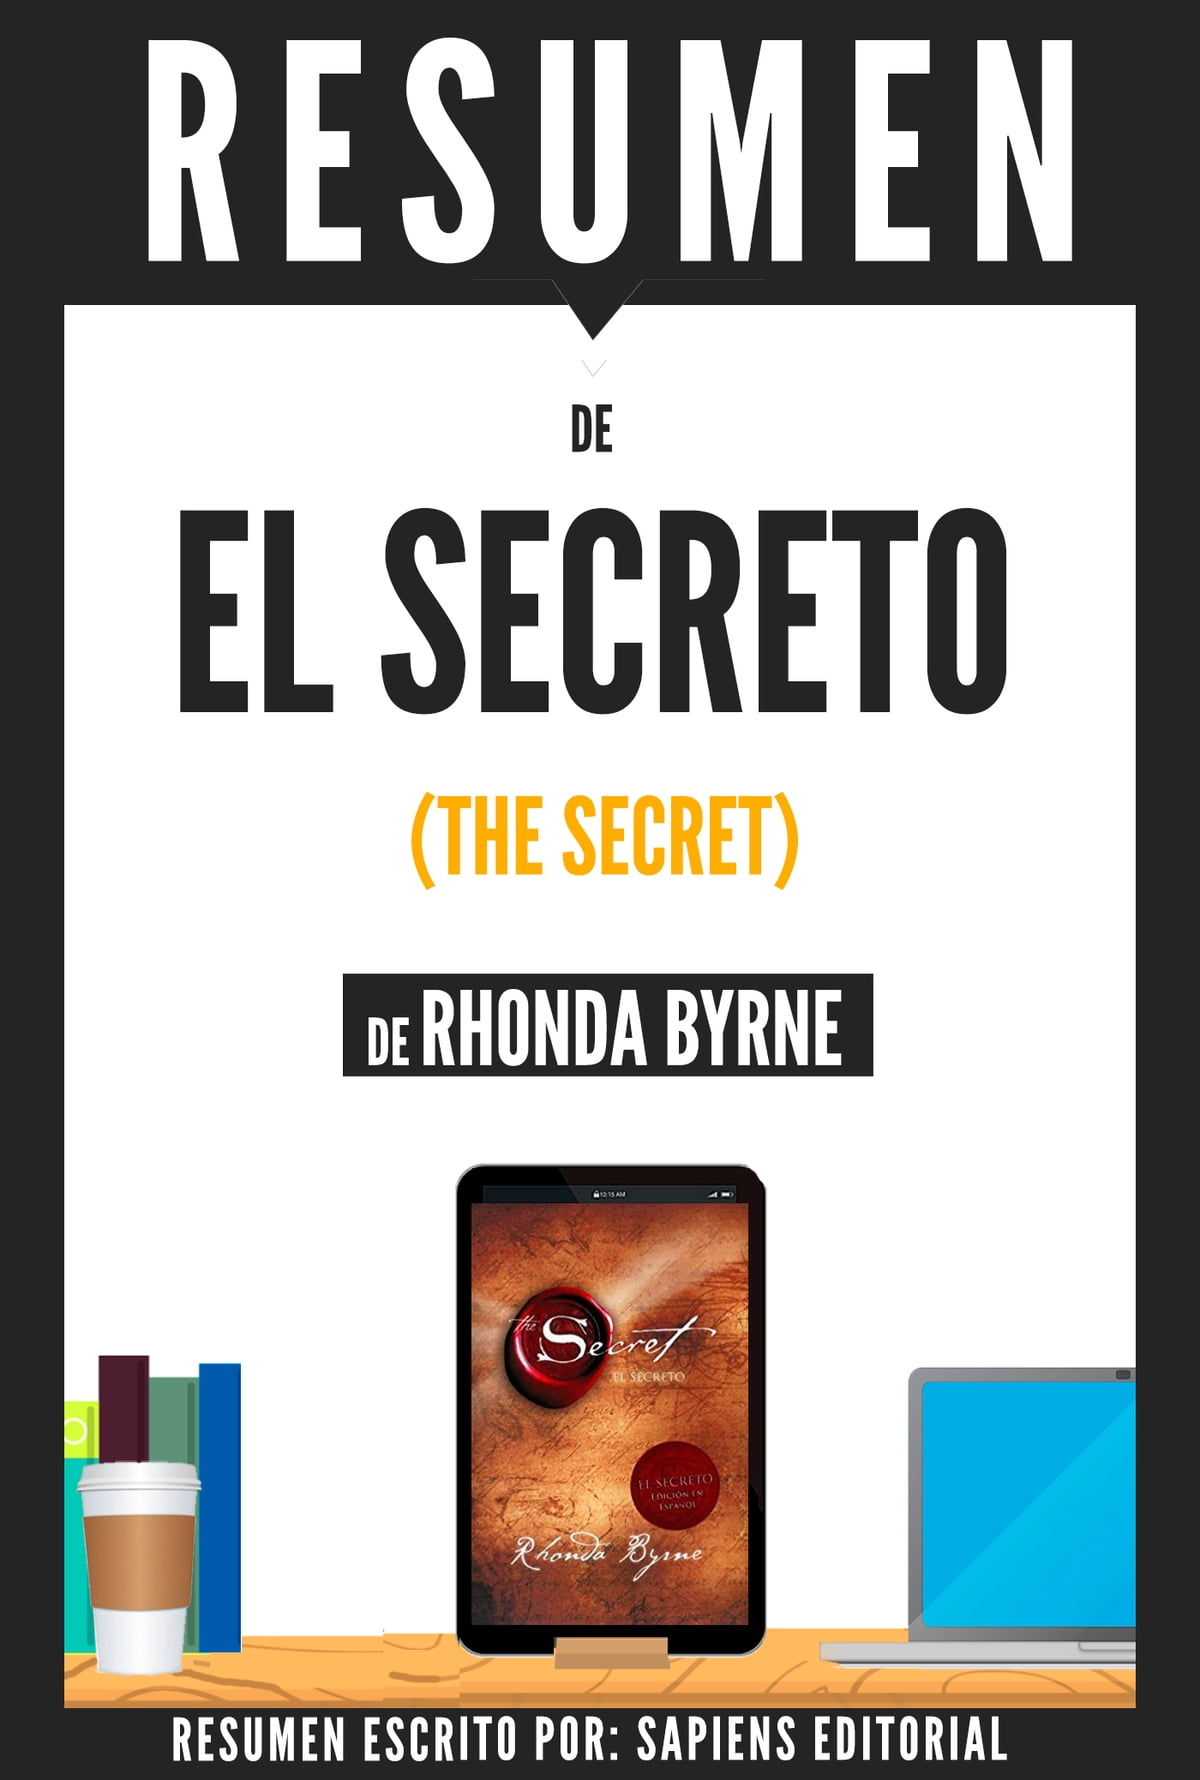 Libro El Secreto Rhonda Byrne Descargar Gratis El Secreto The Secret Resumen Del Libro De Rhonda Byrne Ebook By Sapiens Editorial Rakuten Kobo